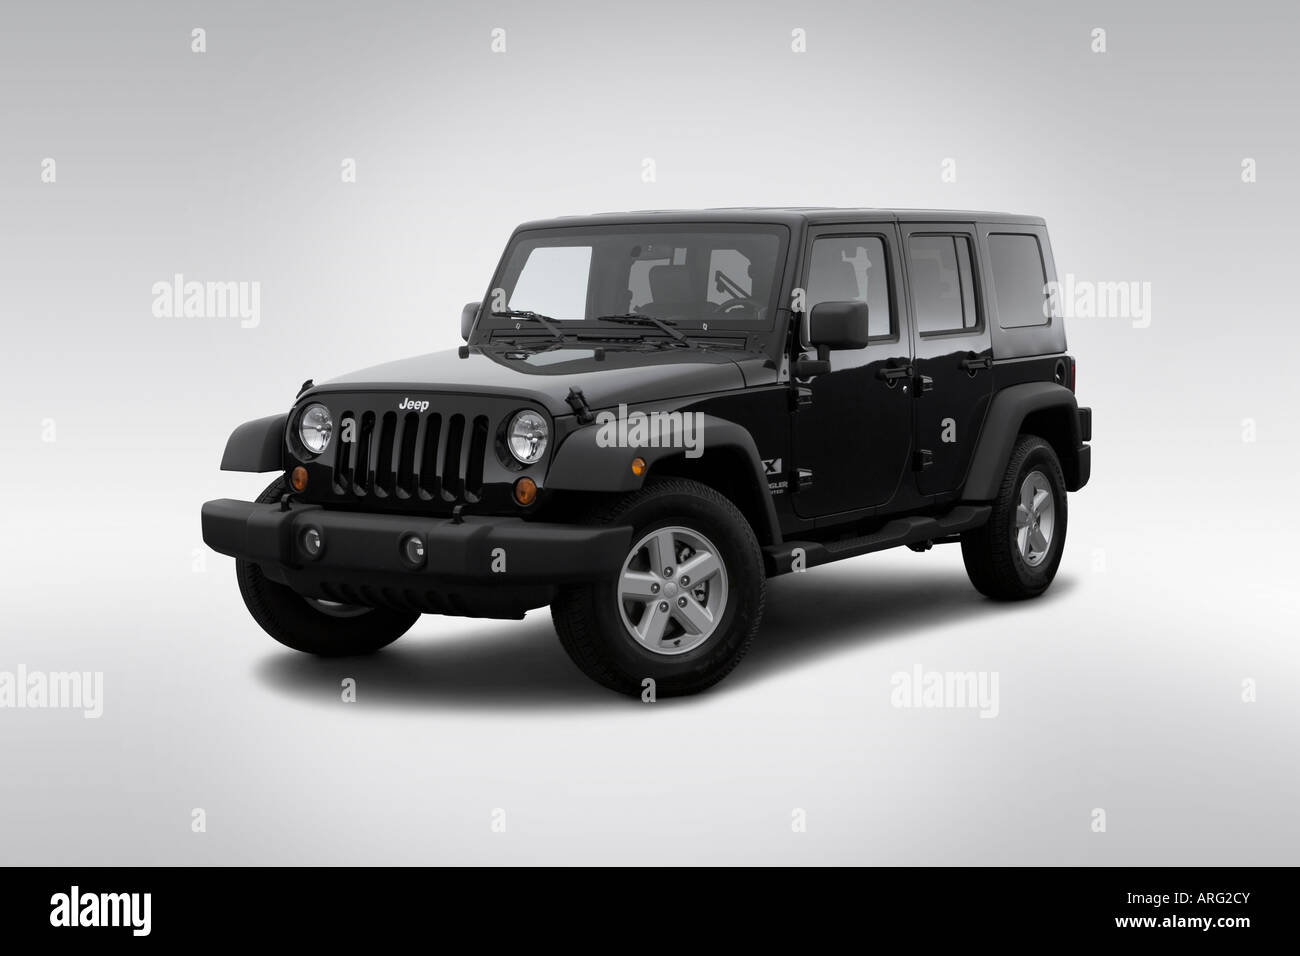 used sale for cars auto wrangler nj unlimited auction jeep x in blog